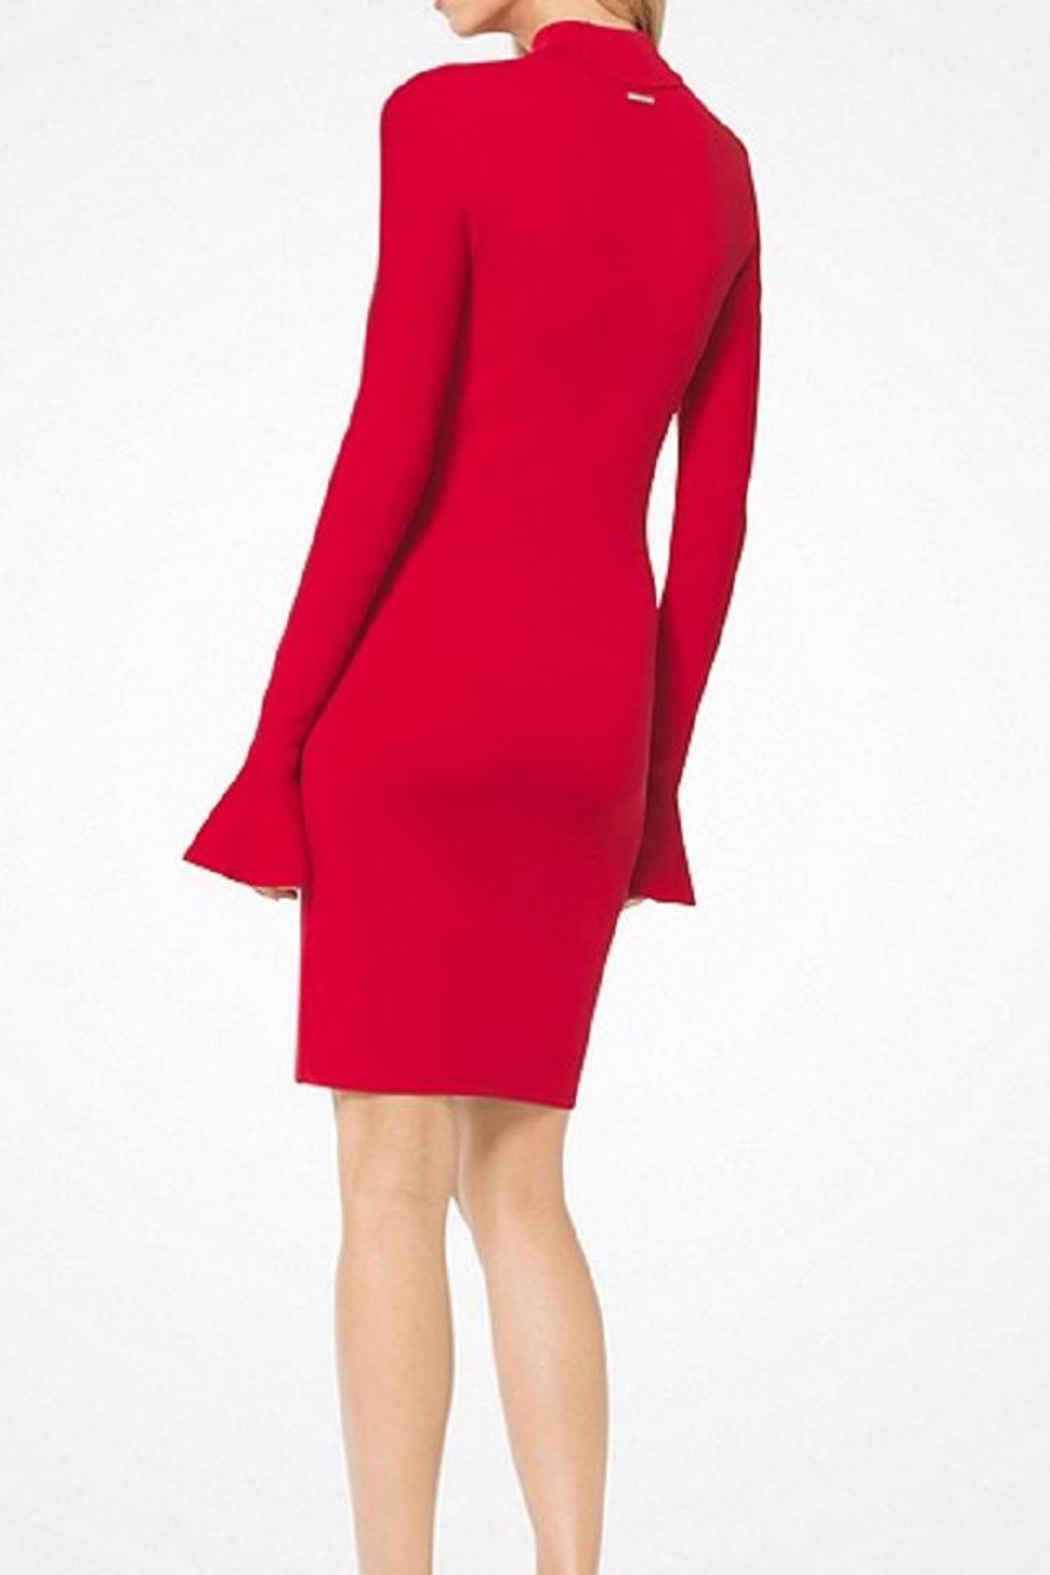 Michael Kors Bell-Sleeved Knit Dress - Front Full Image